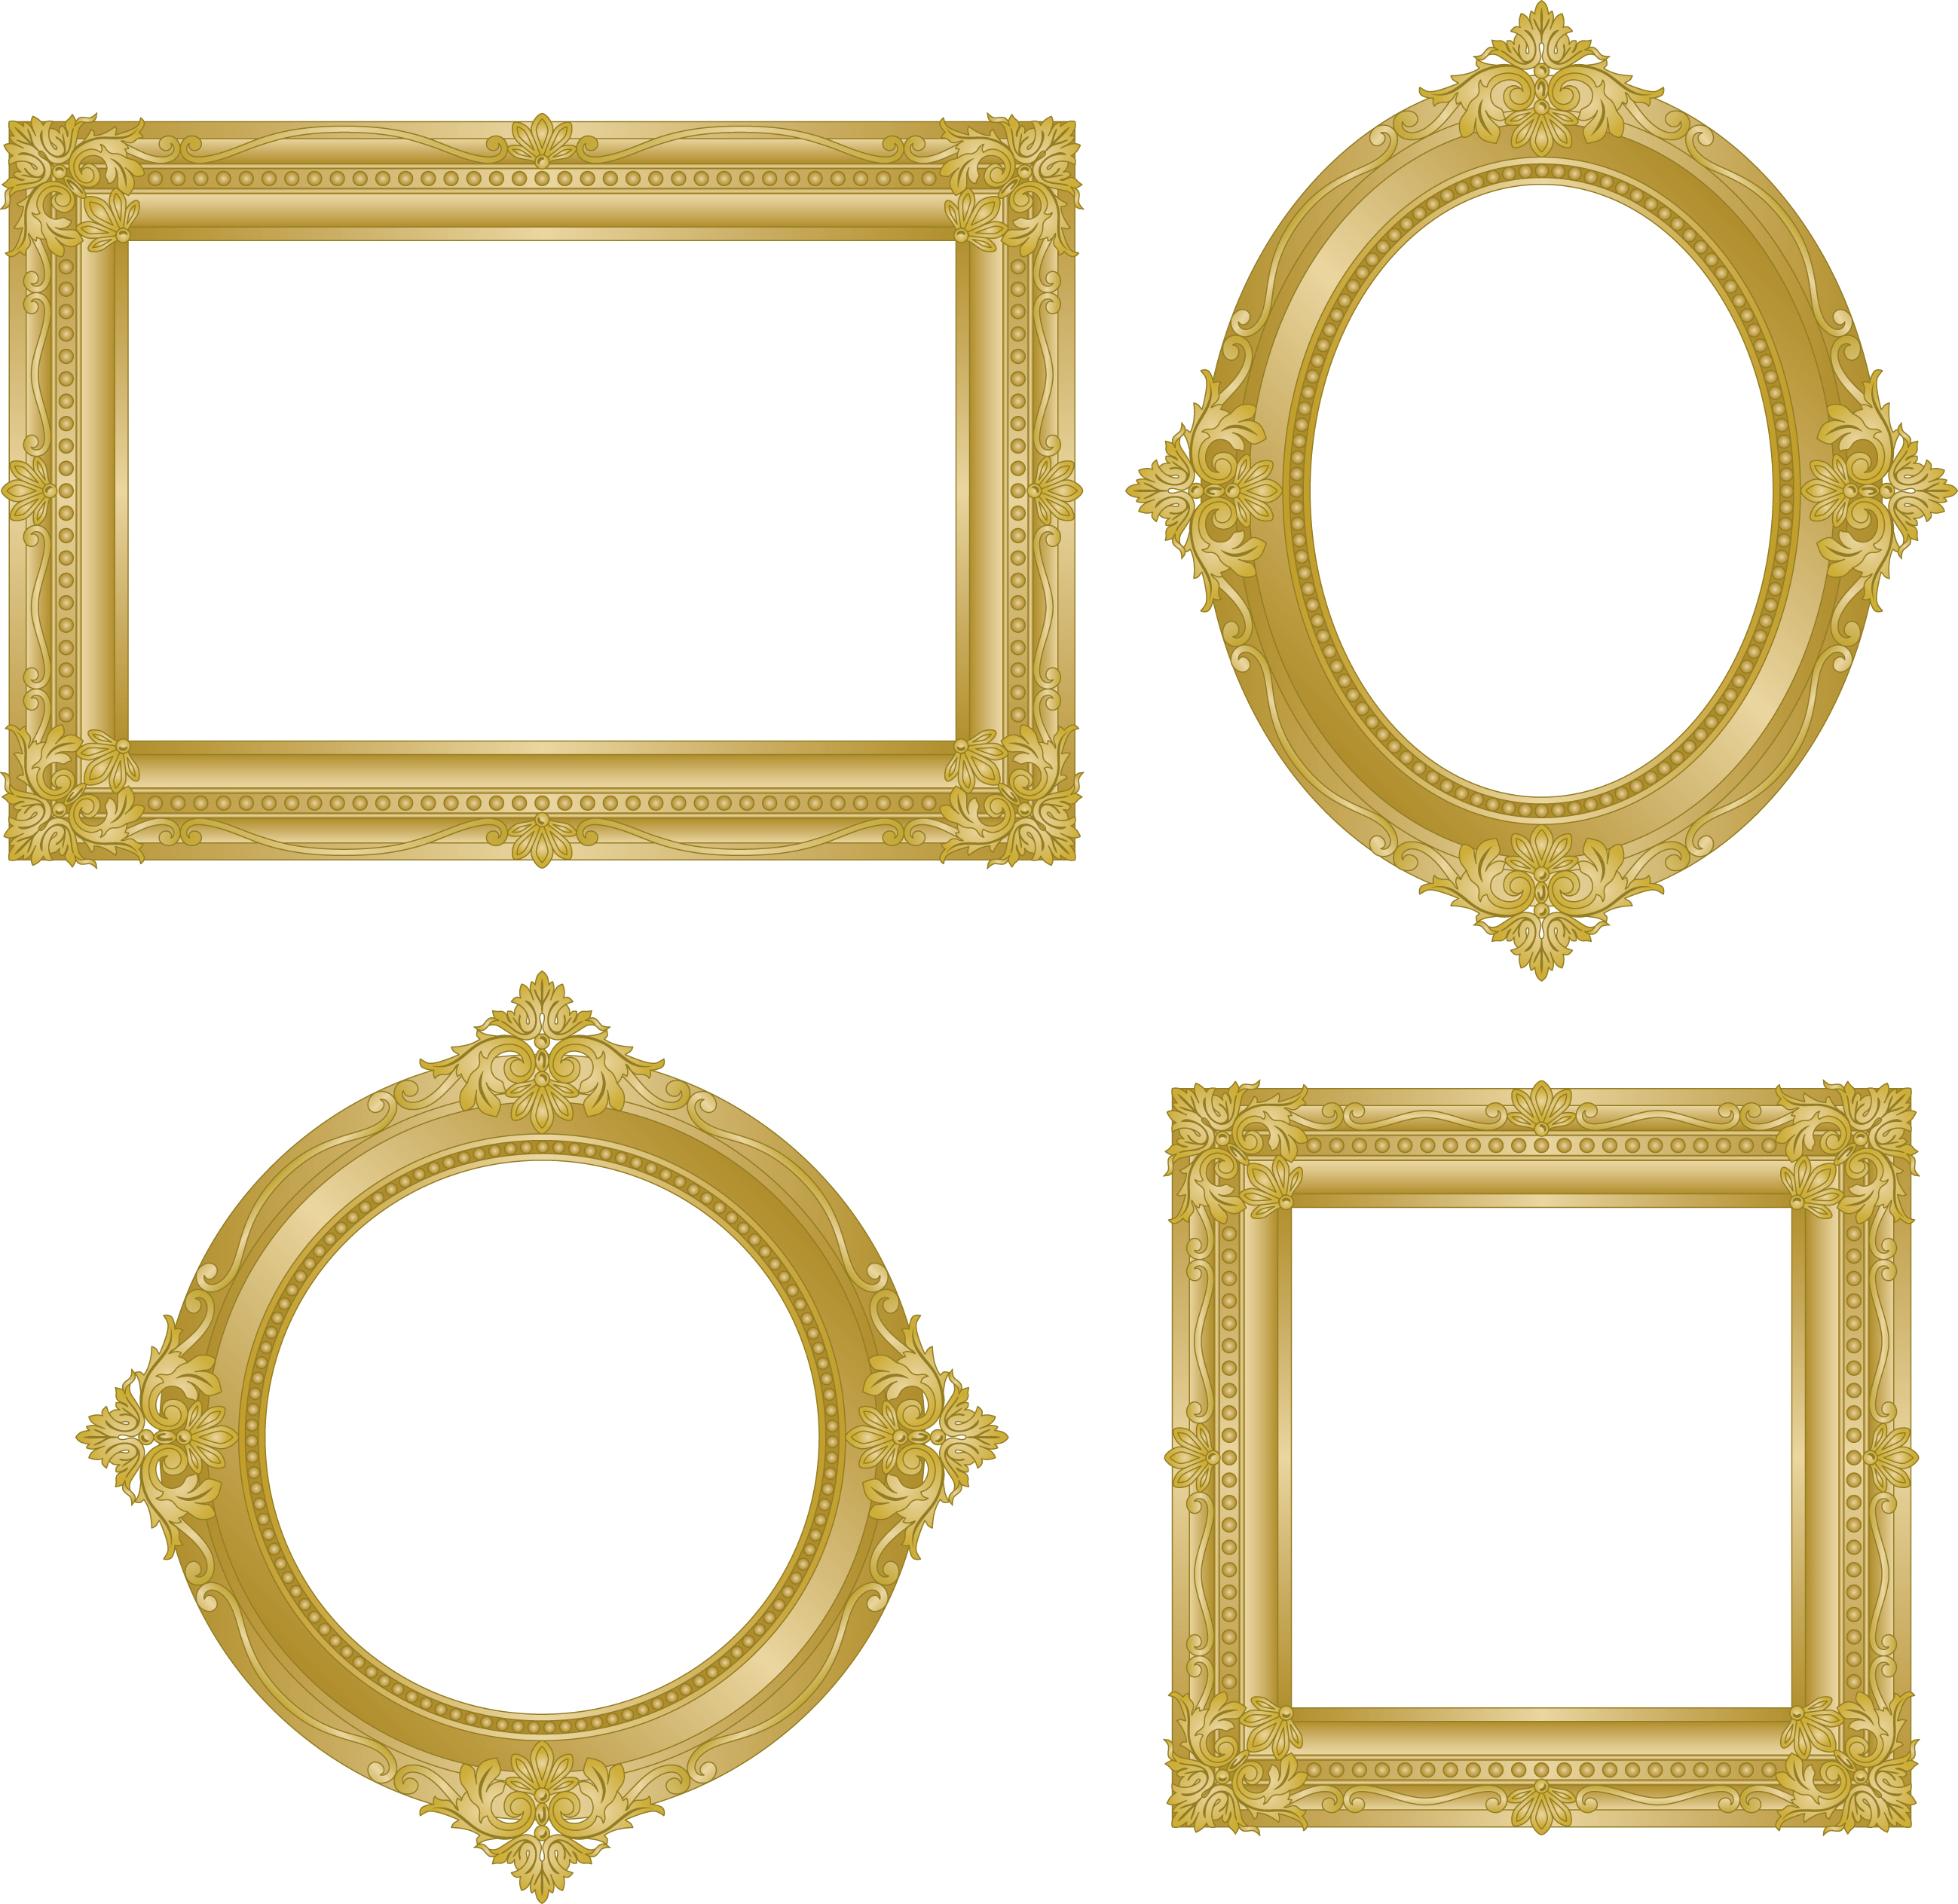 Stunning free vector frames images